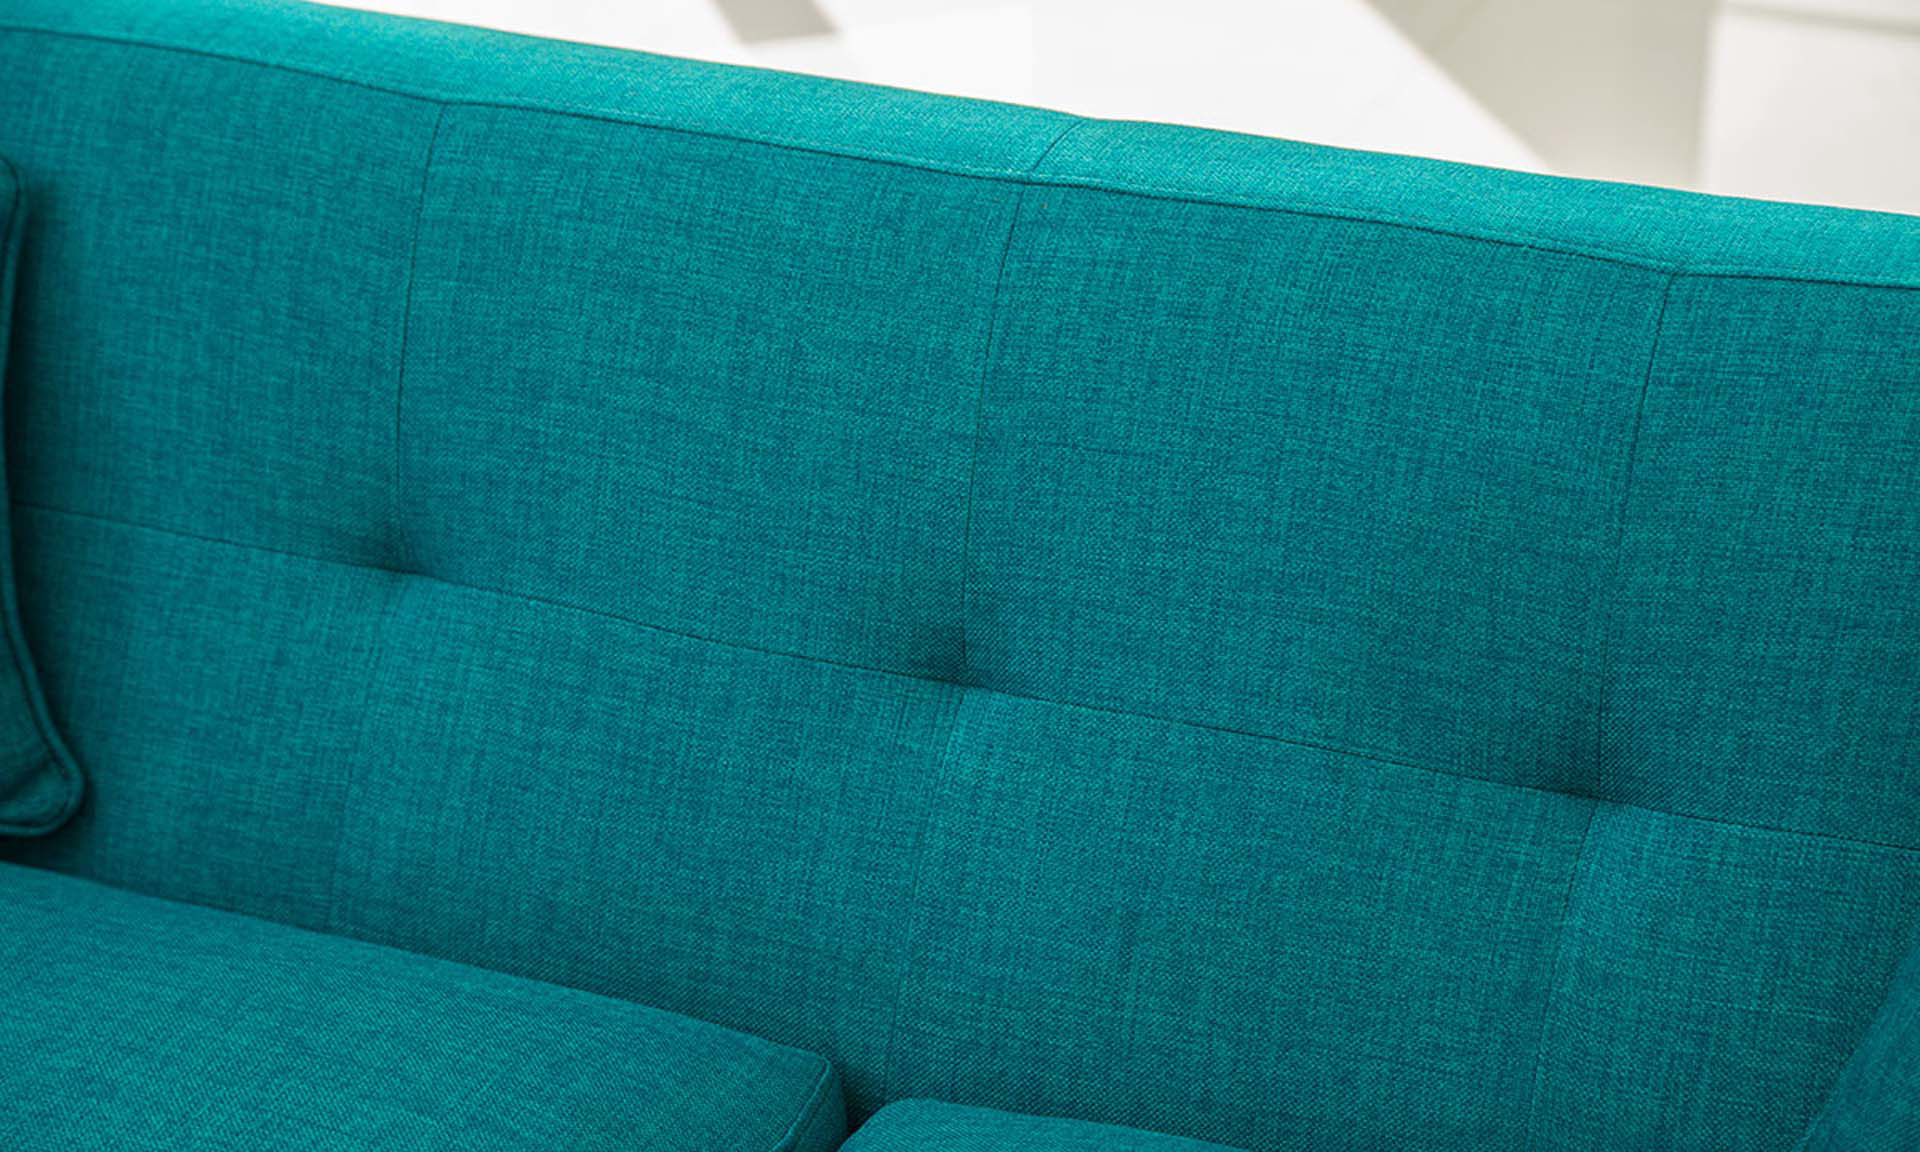 Close-up of button tufting on mid-century modern sofa in teal upholstery